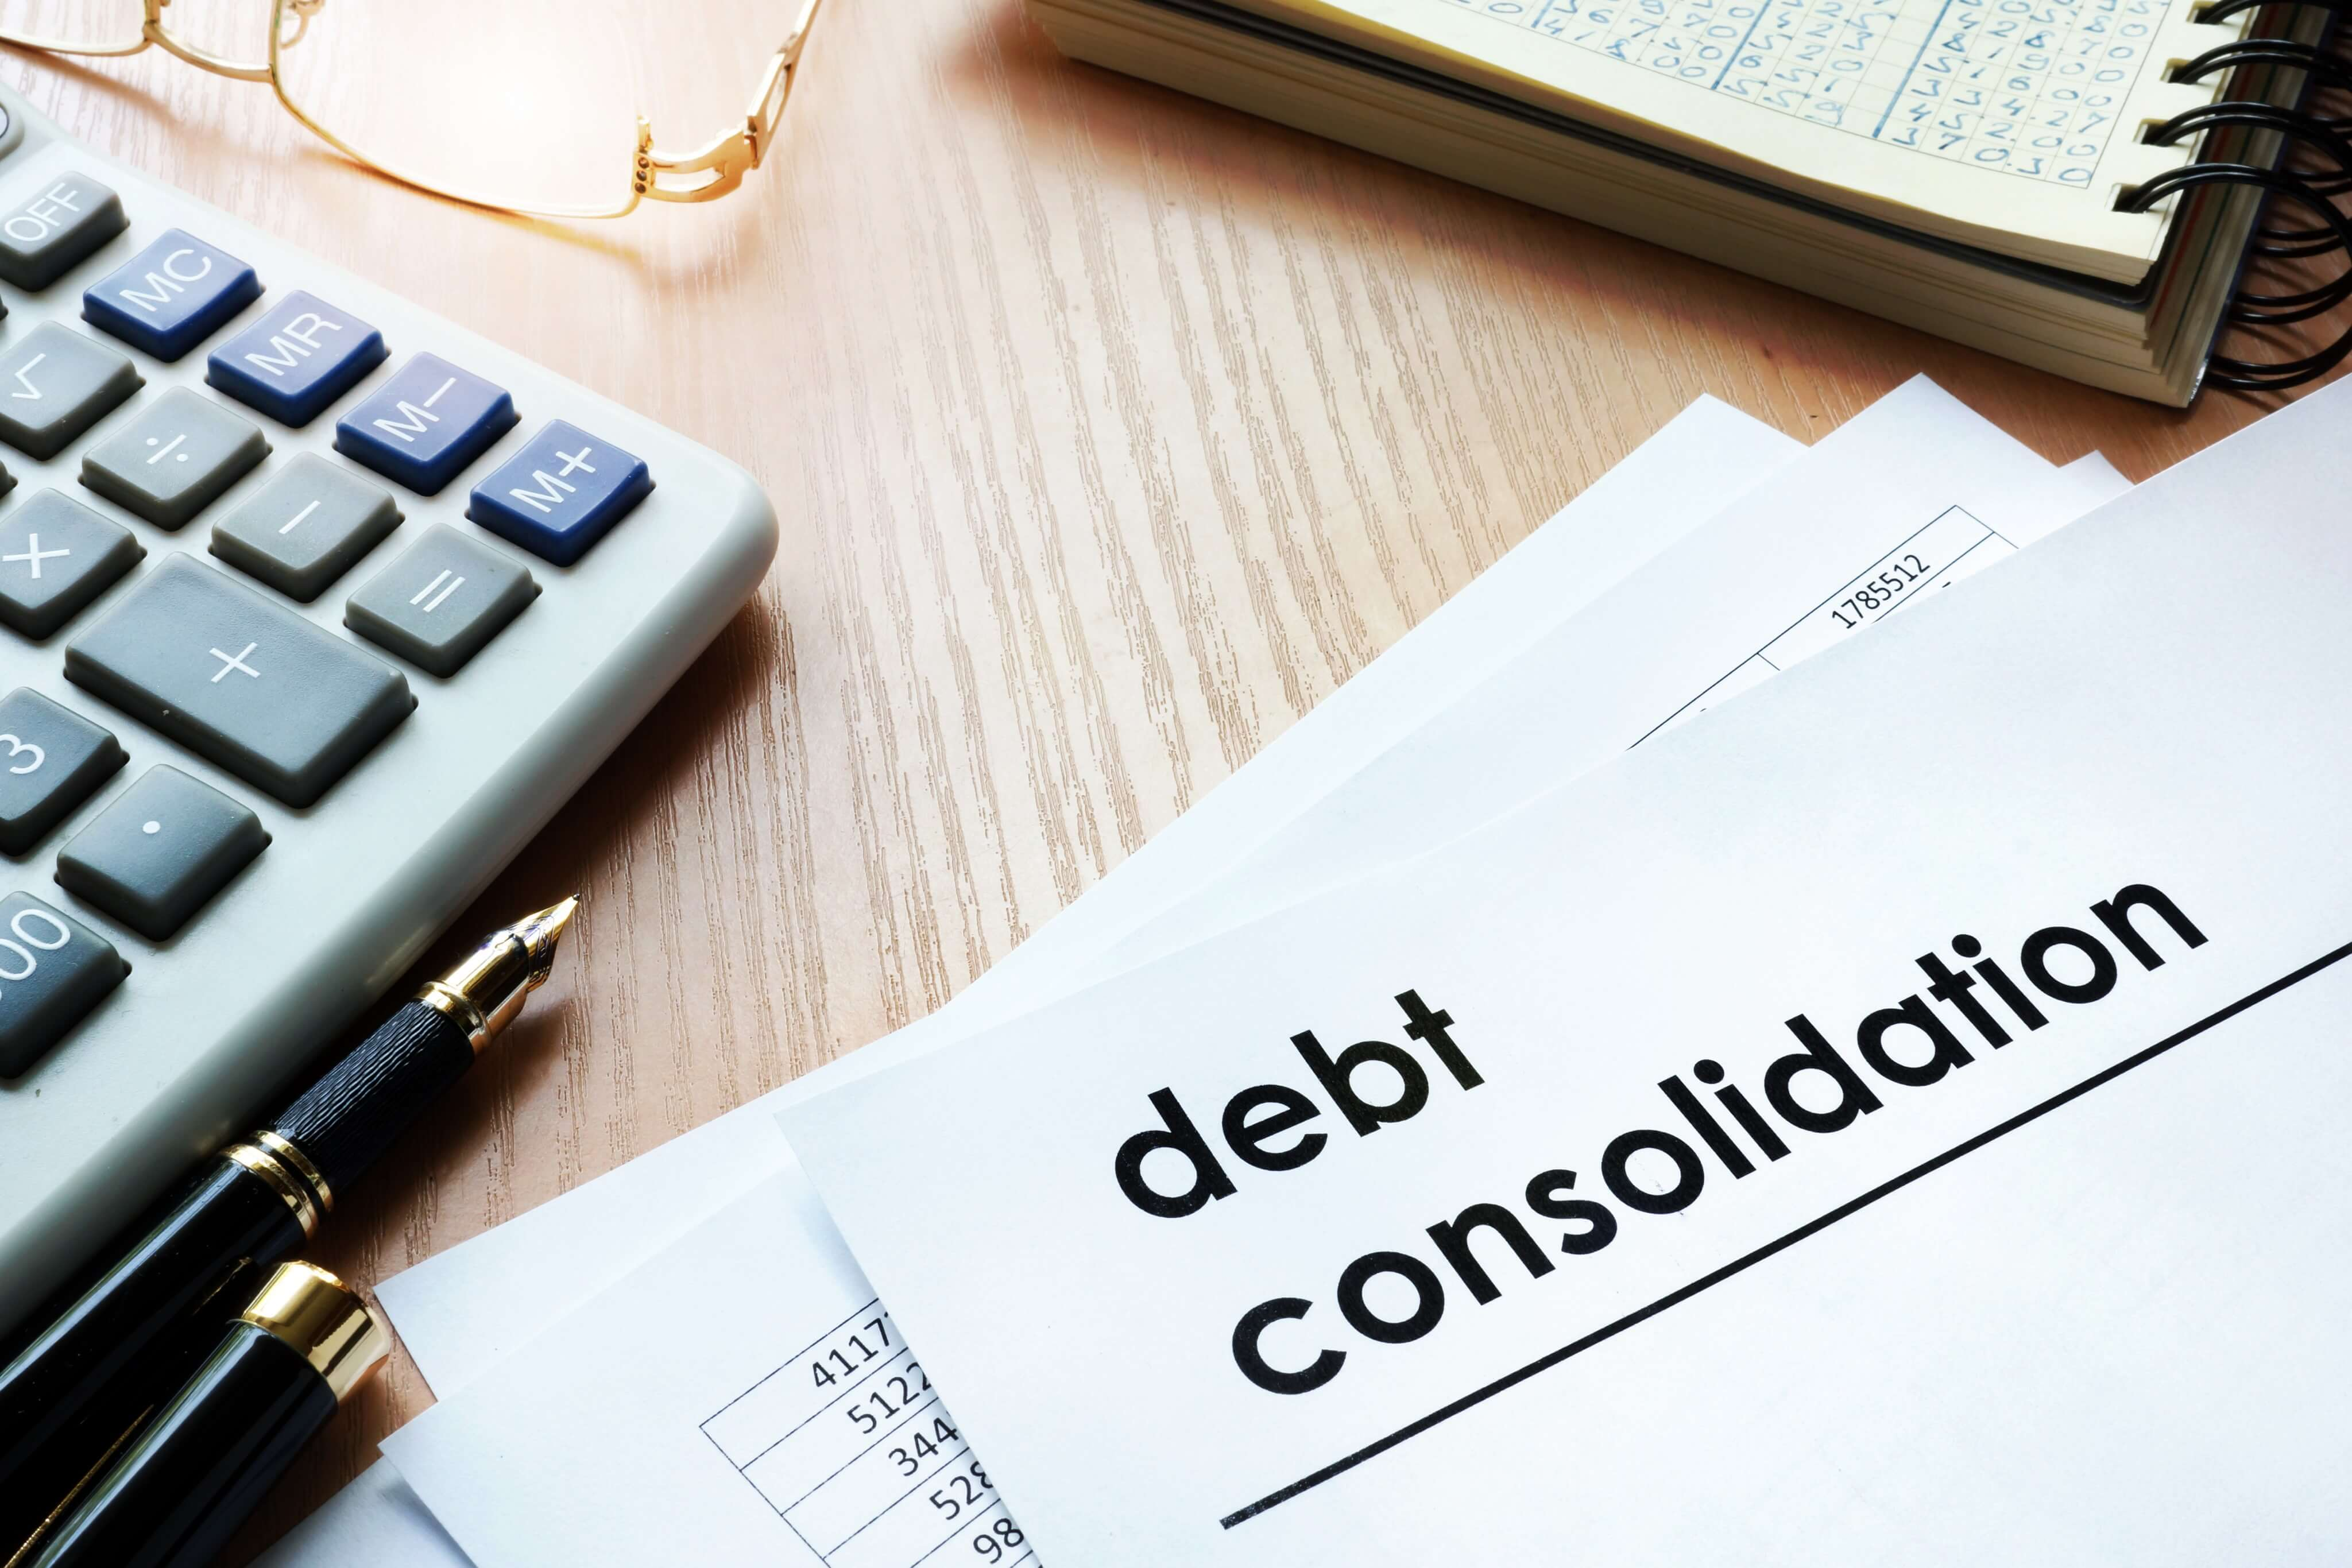 Why a Debt Consolidation Loan May Be the Right Move for Your Financial Situation